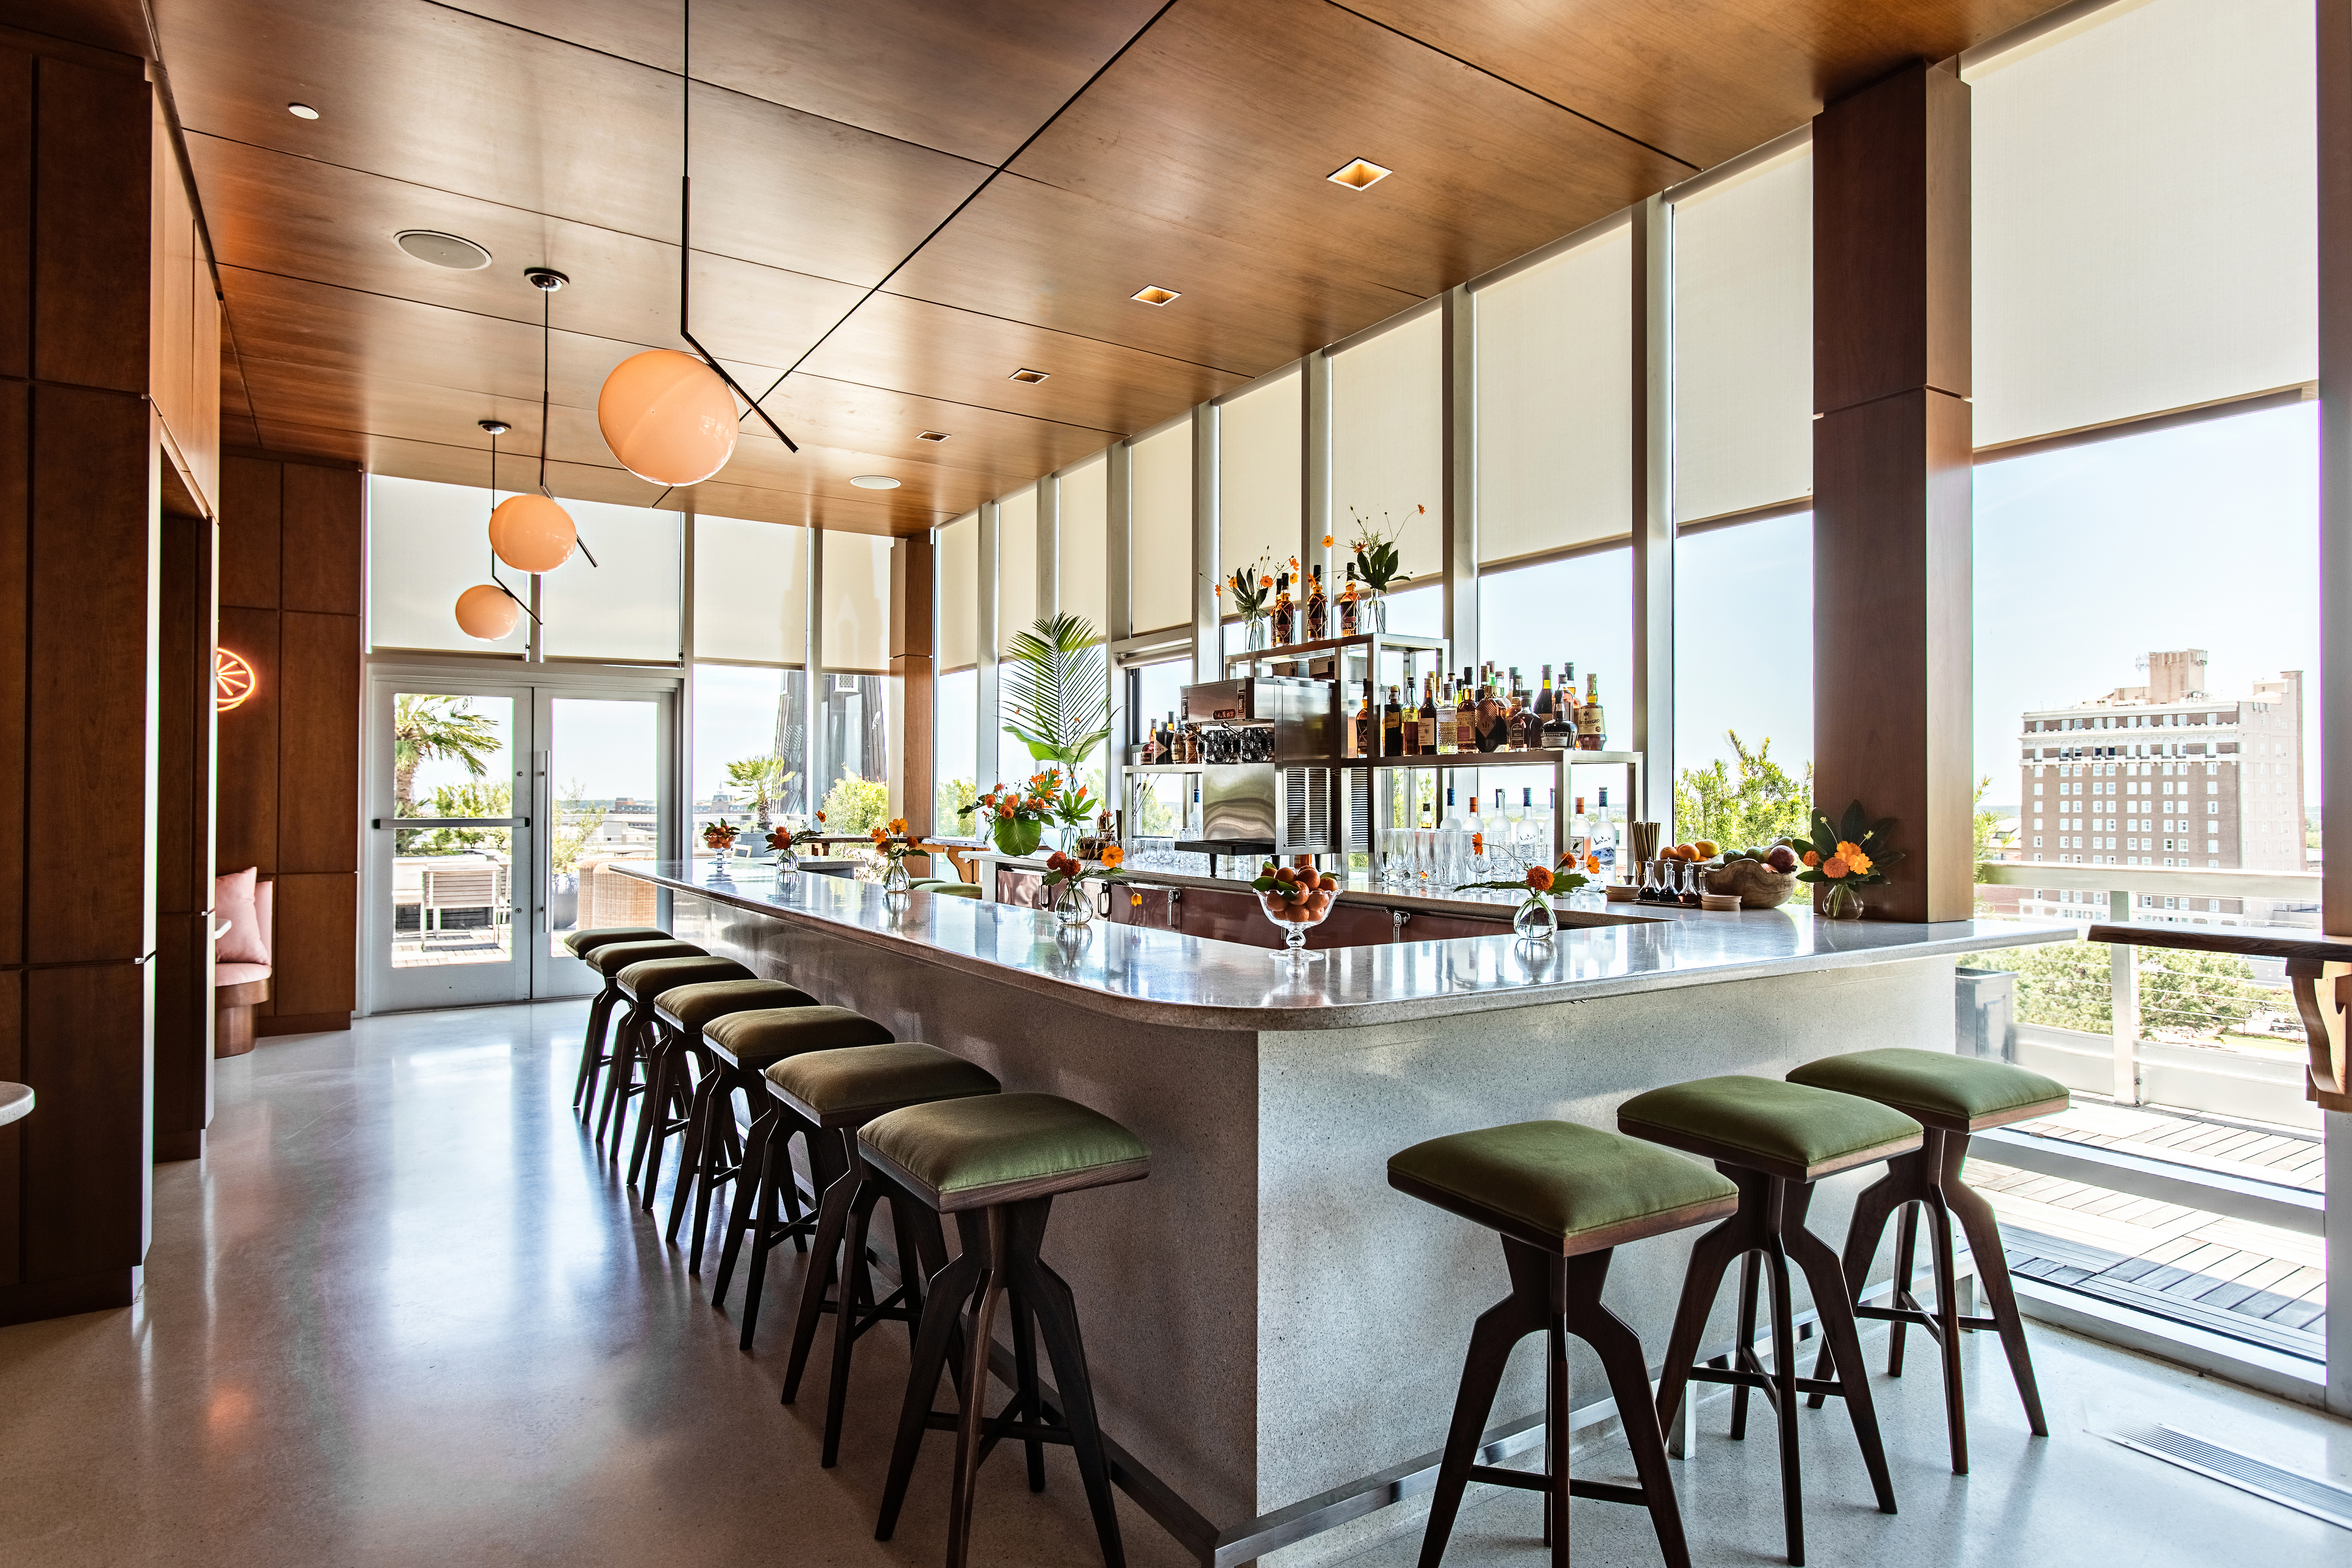 Workstead's Citrus Club at The Dewberry Takes Mid-Century Modern ...